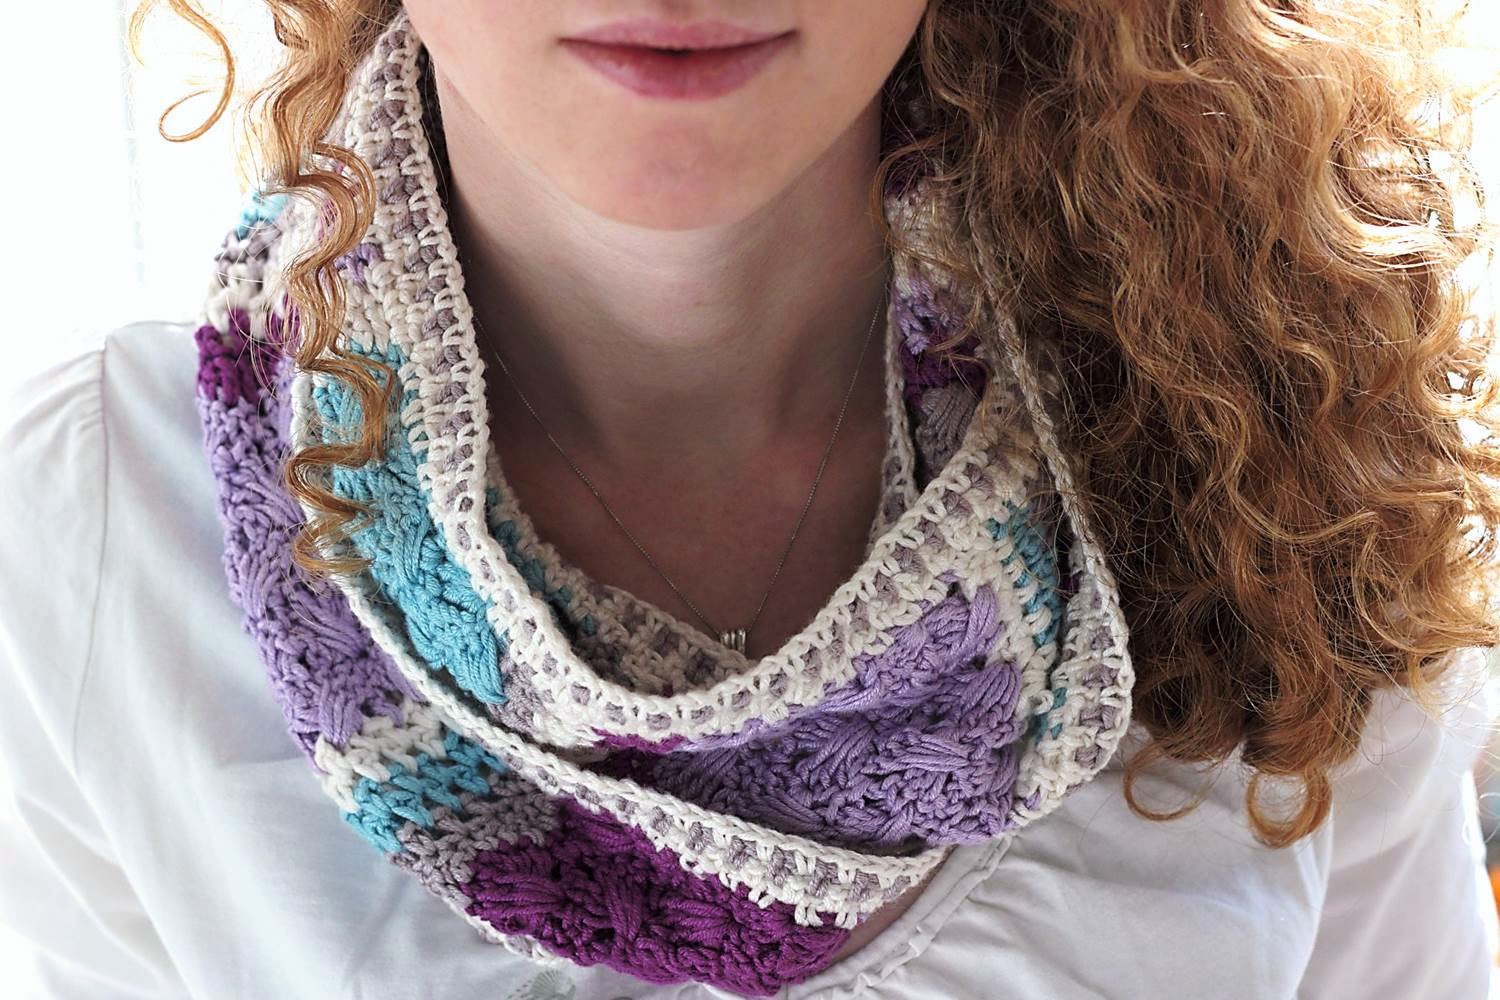 Lavender Skies Cowl, made using Sirdar Snuggly Baby Bamboo and designed by Eline Alcocer.